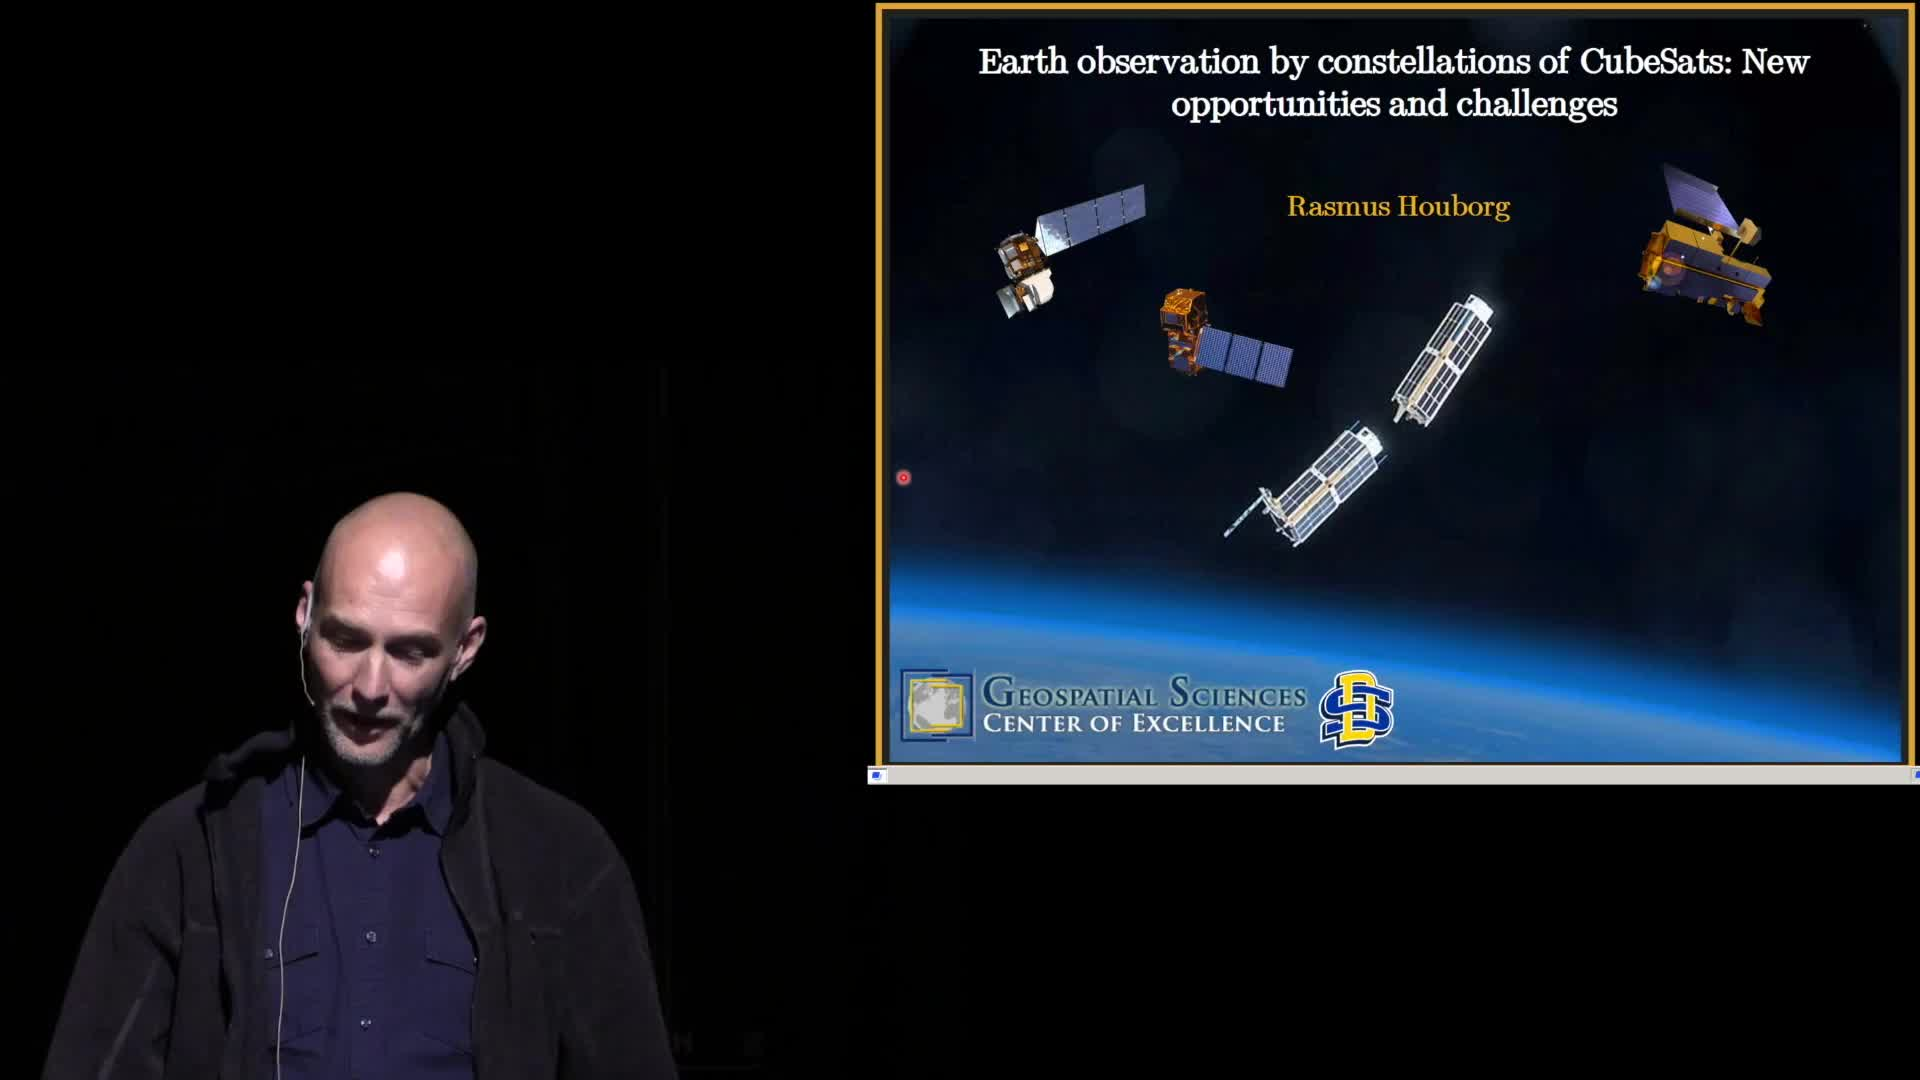 Earth observation by constellations of CubeSats: New